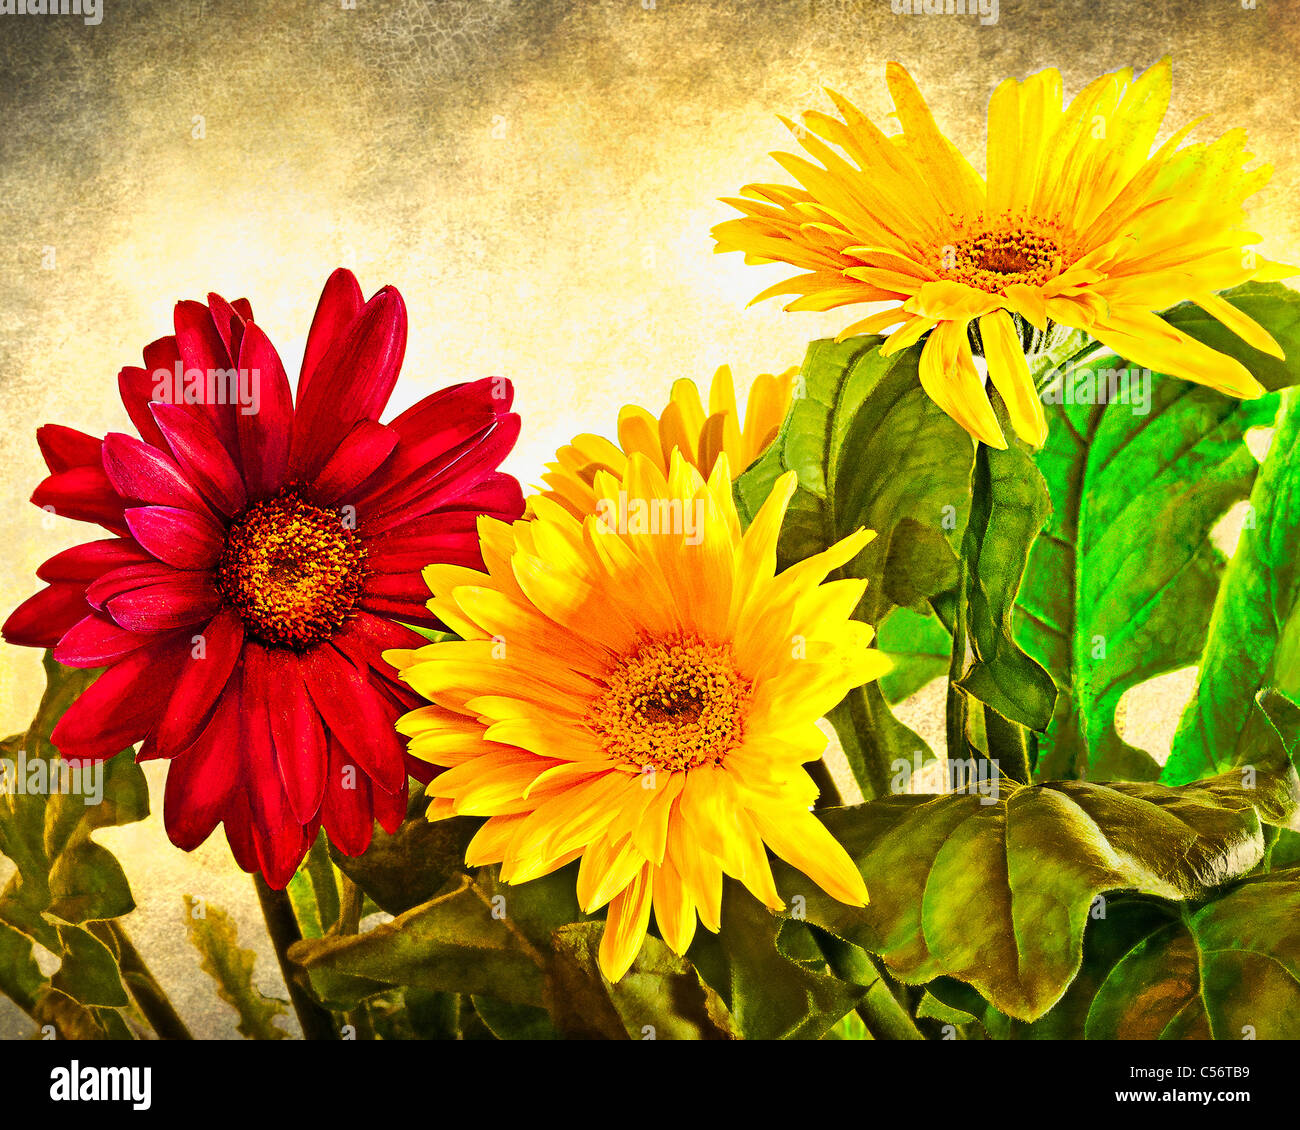 Red and Yellow Flowers with Antiqued Background - Stock Image